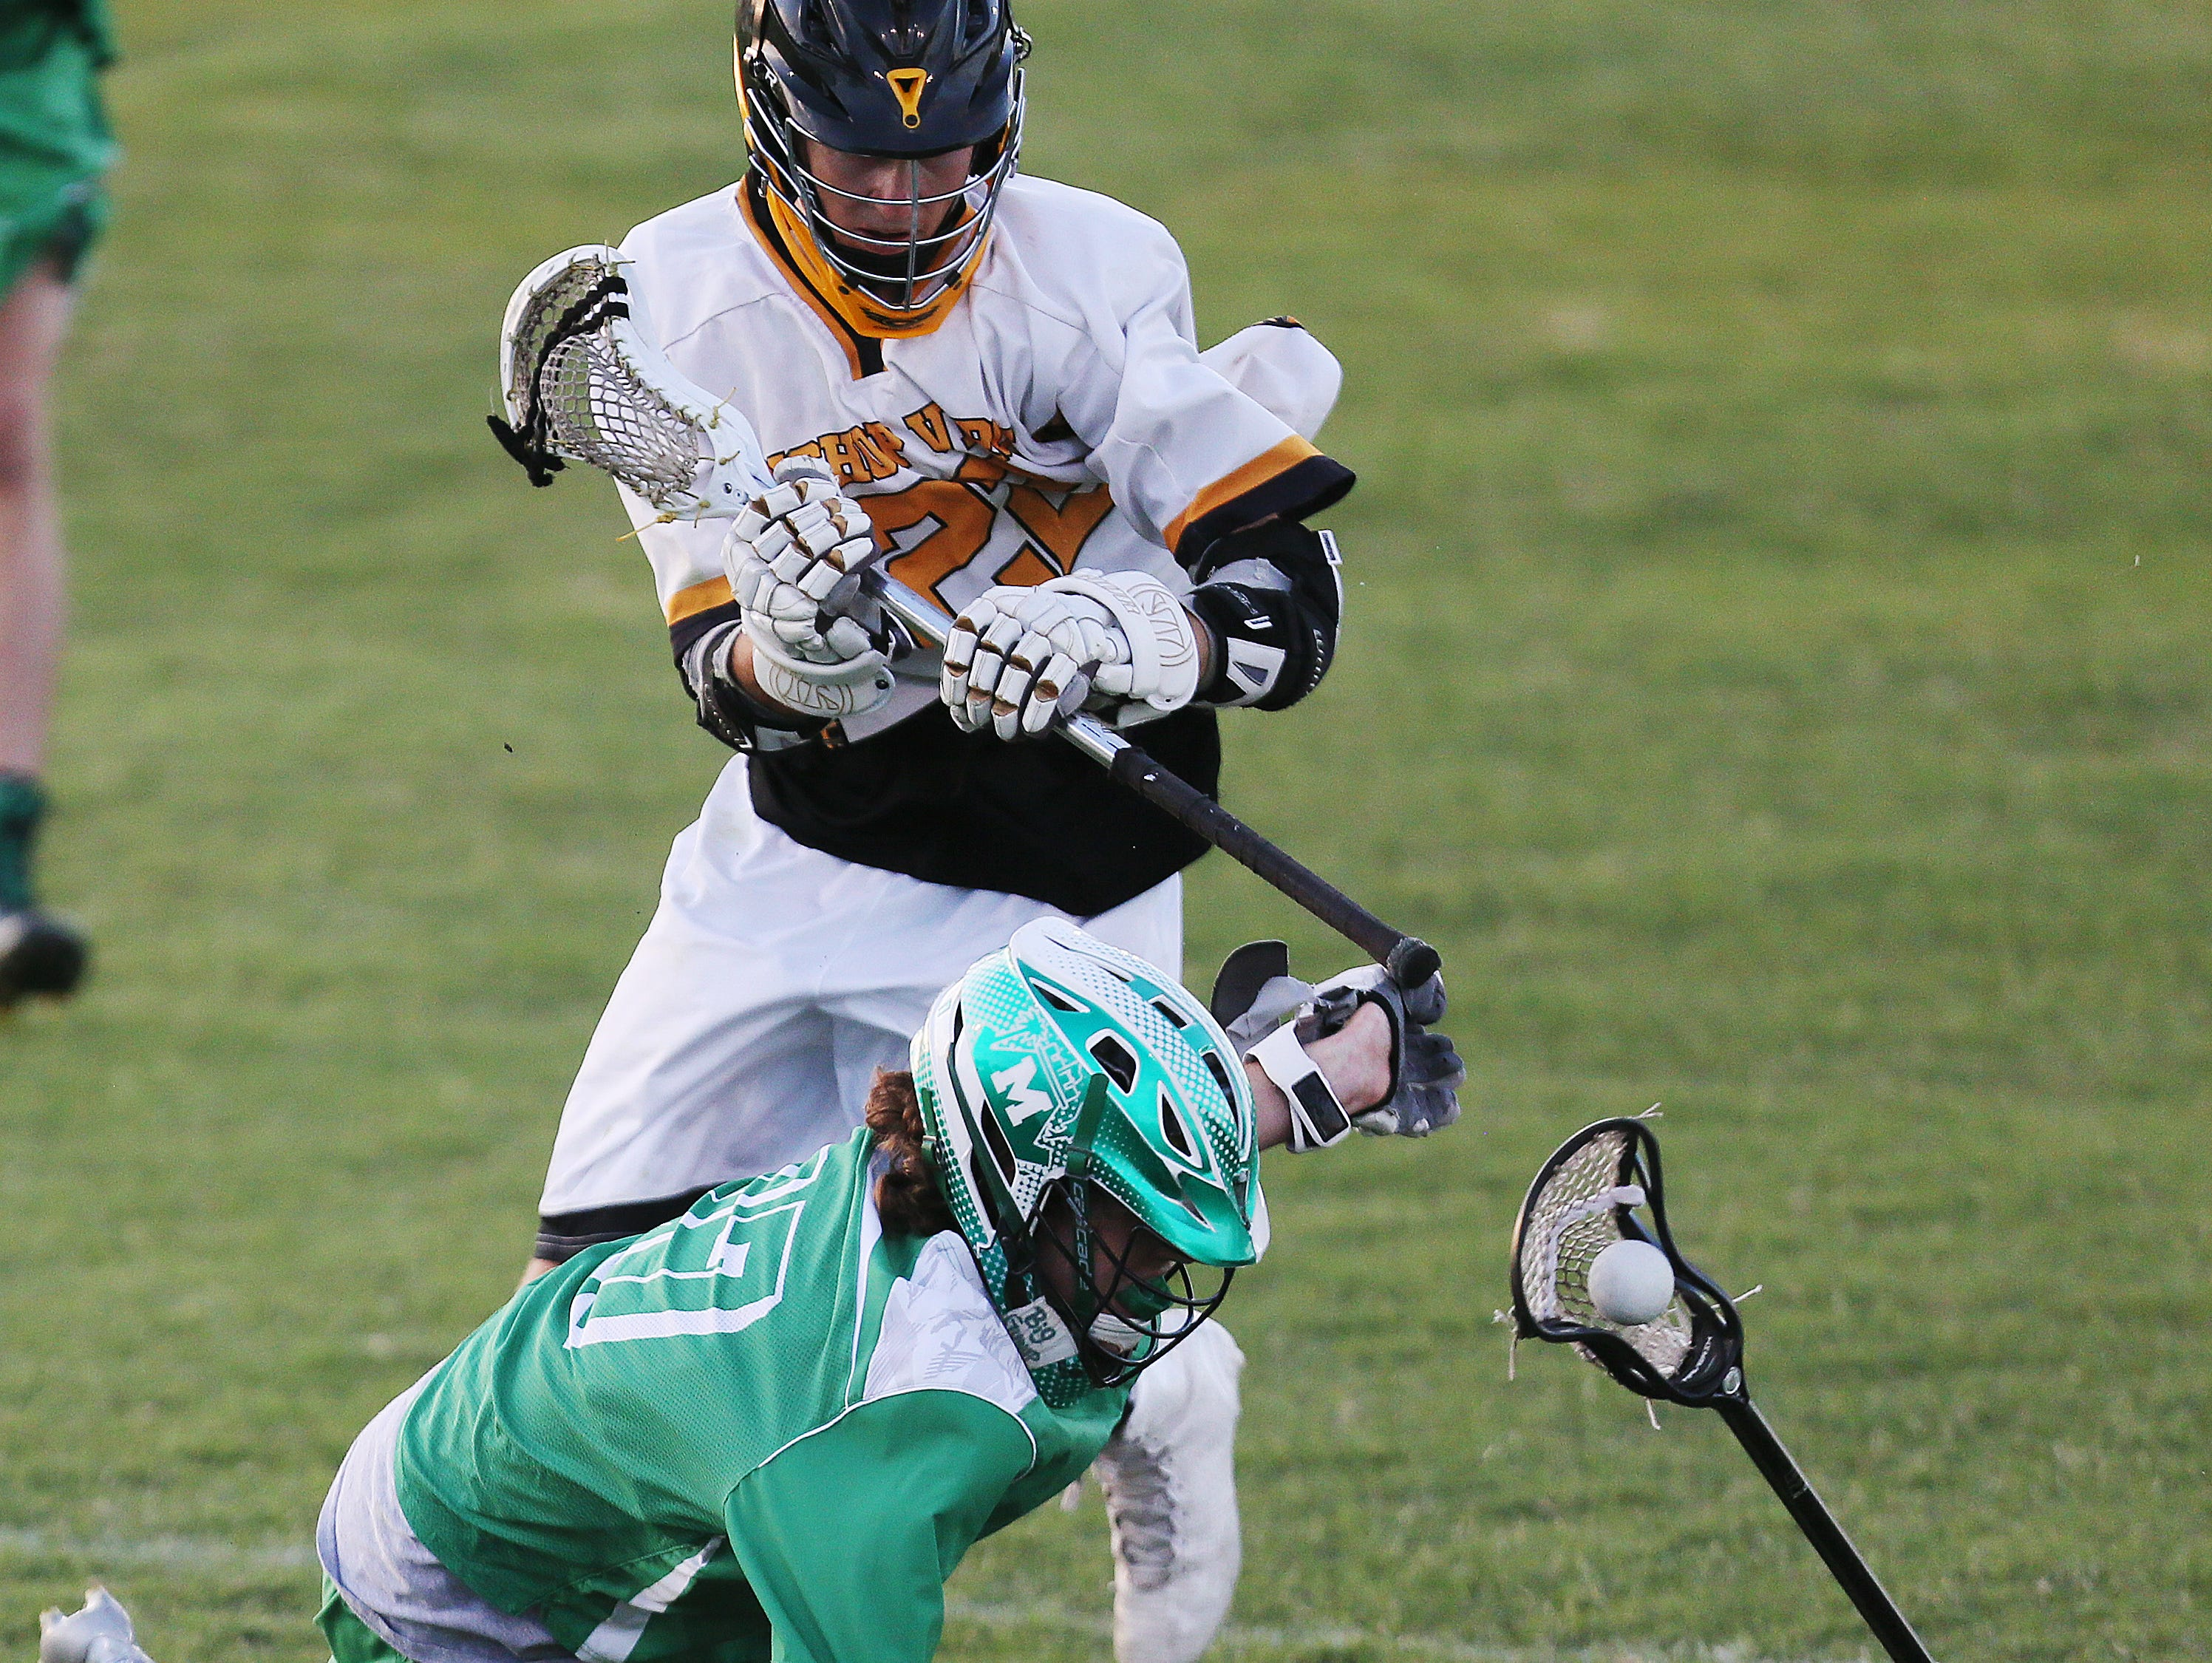 Bishop Verot High School's Luke Lanman, top, defends Fort Myers' Harrison Personnett during the District 18 lacrosse final Friday at the Canterbury School in Fort Myers. Bishop Verot beat Fort Myers 13-6.